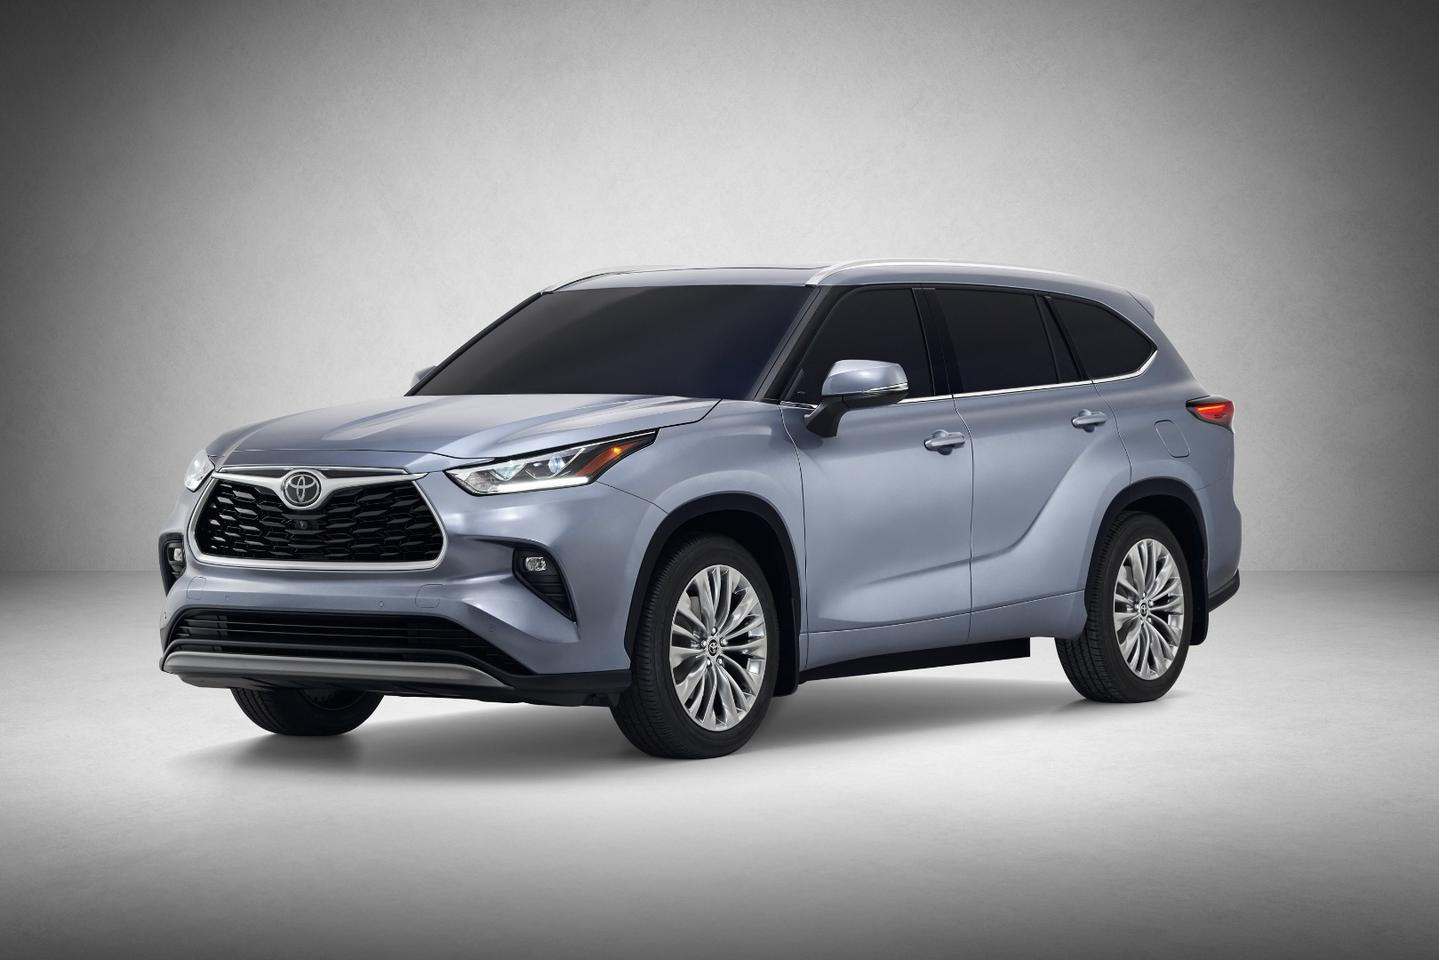 The 2020 Toyota Highlander marks the fourth generation of the three-row crossover